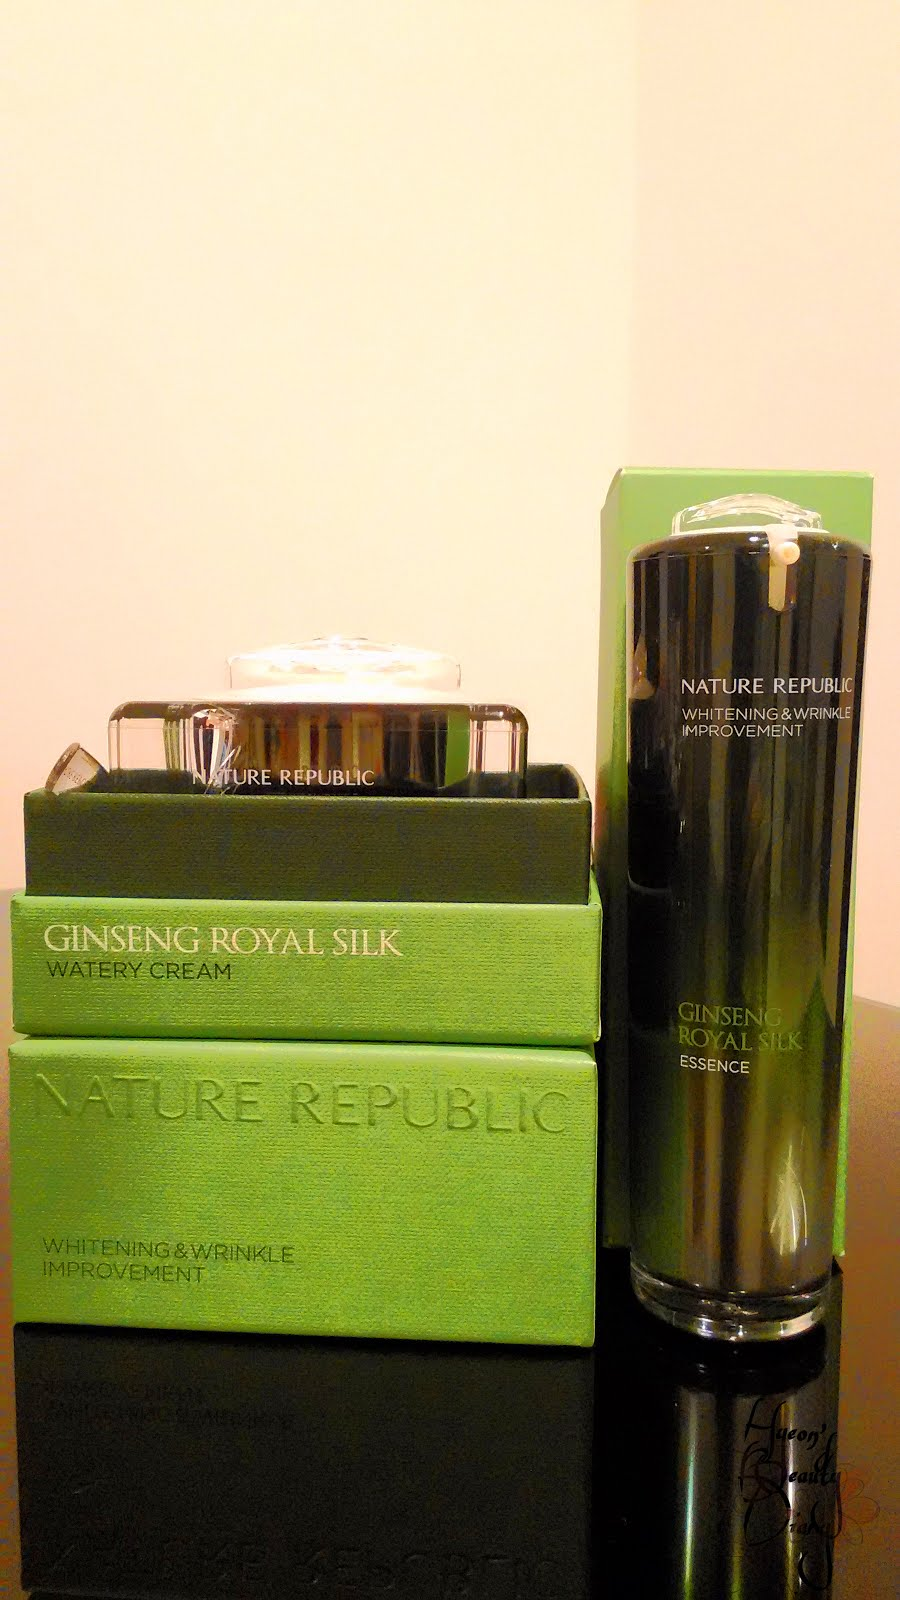 Nature Republic Whitening And Wrinkle Improvement Review